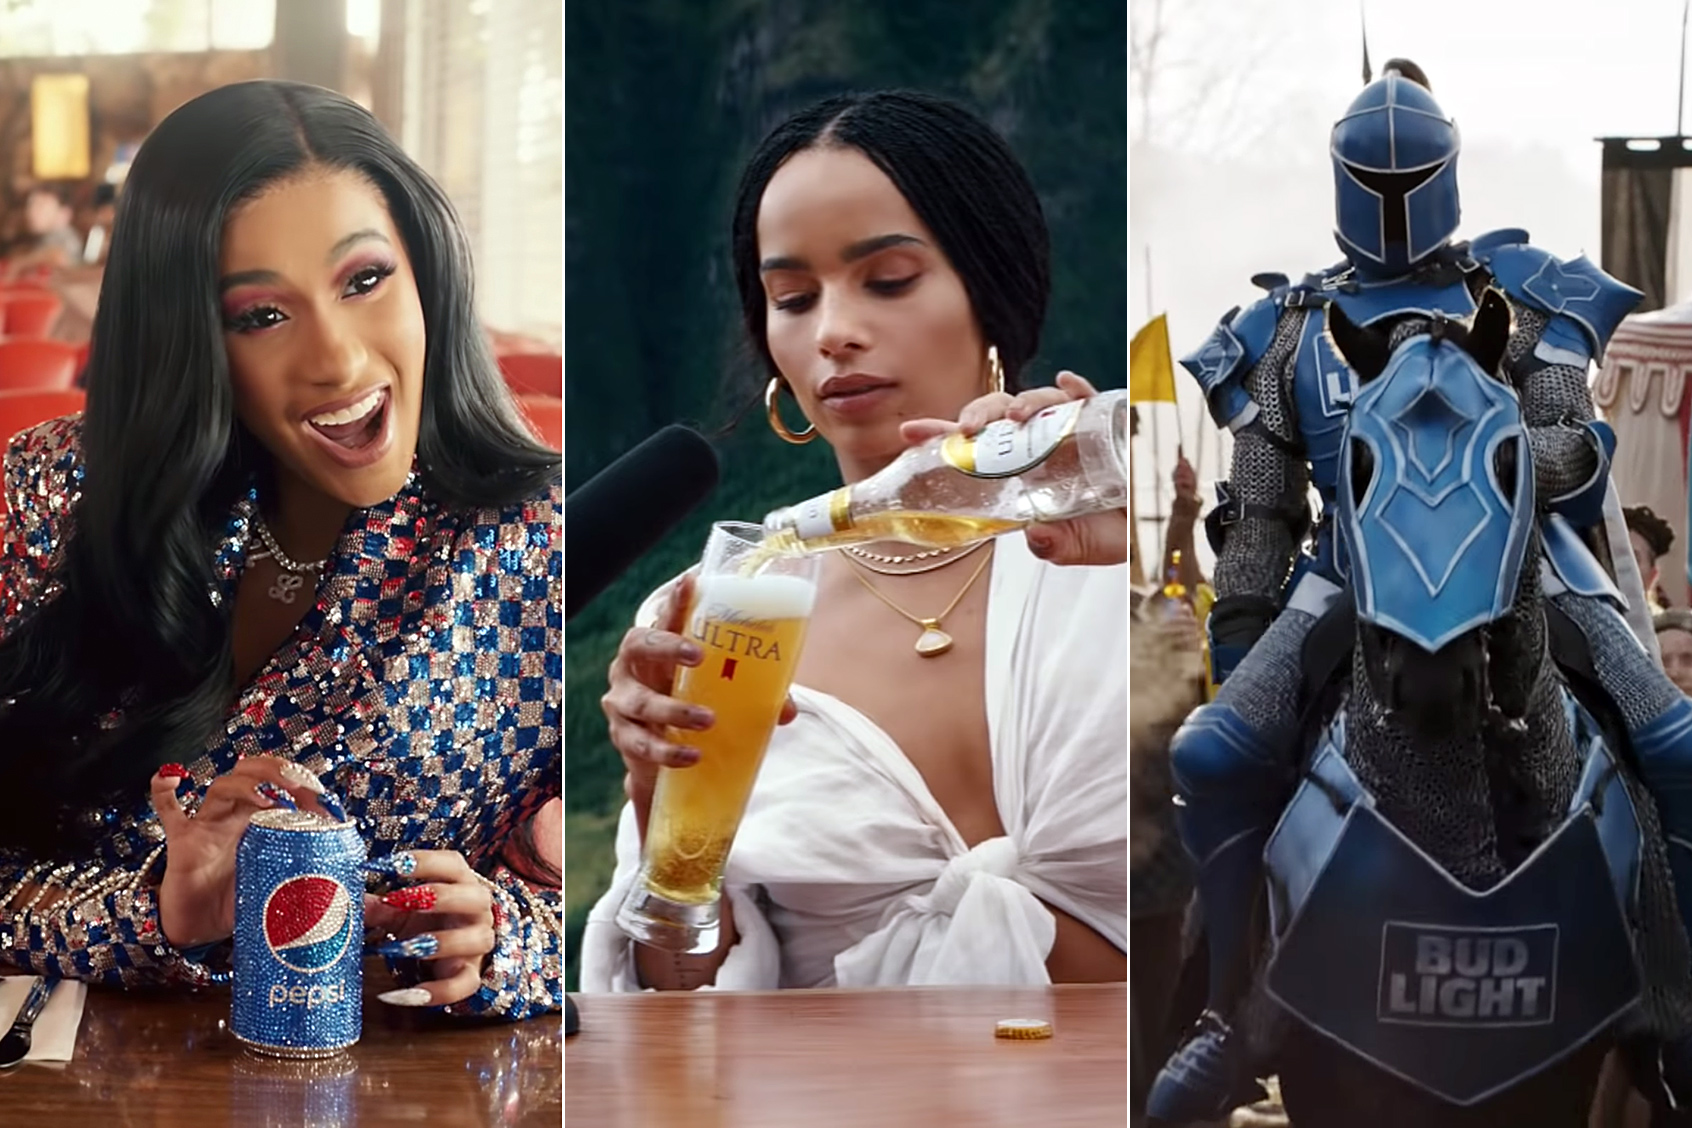 ASMR, Robots and Carrie Bradshaw: The Best and Worst Super Bowl LIII Spots